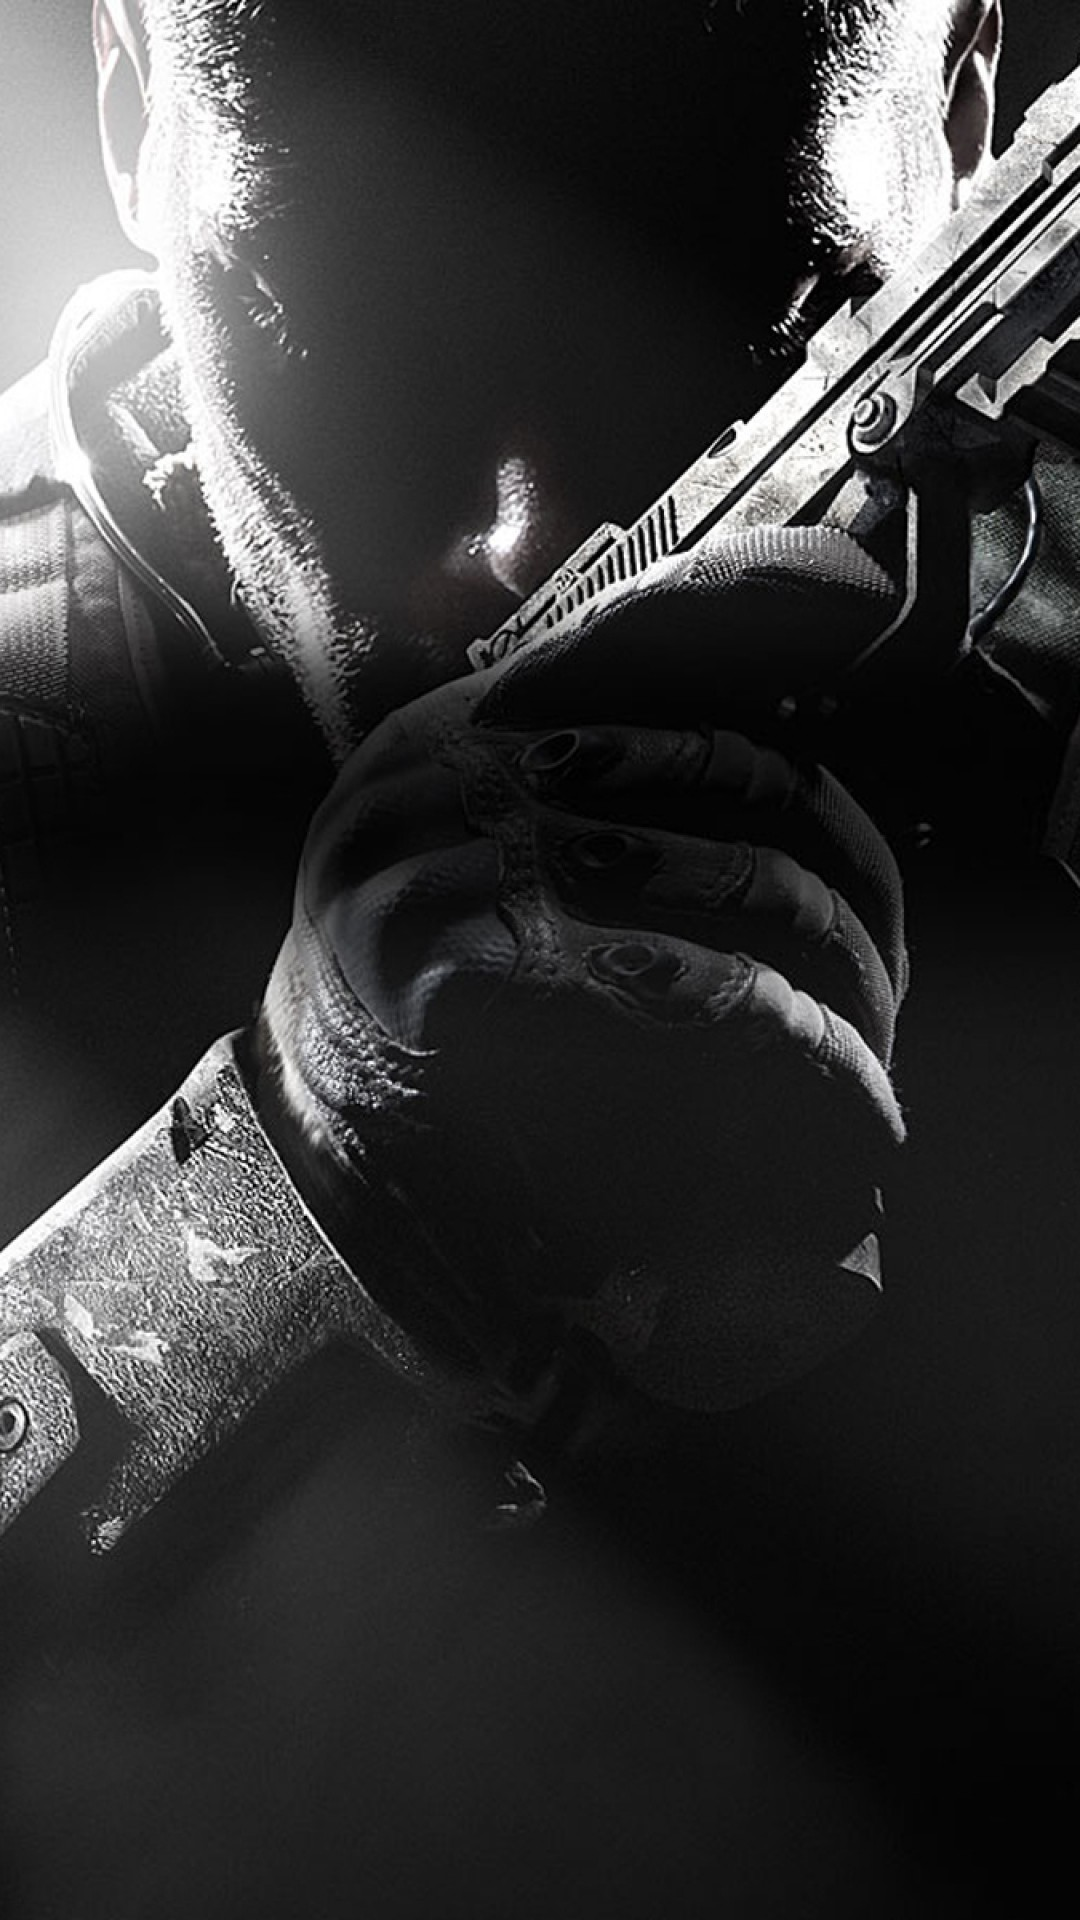 1080x1920 Black Ops 2 HD Wallpaper for Mobile.